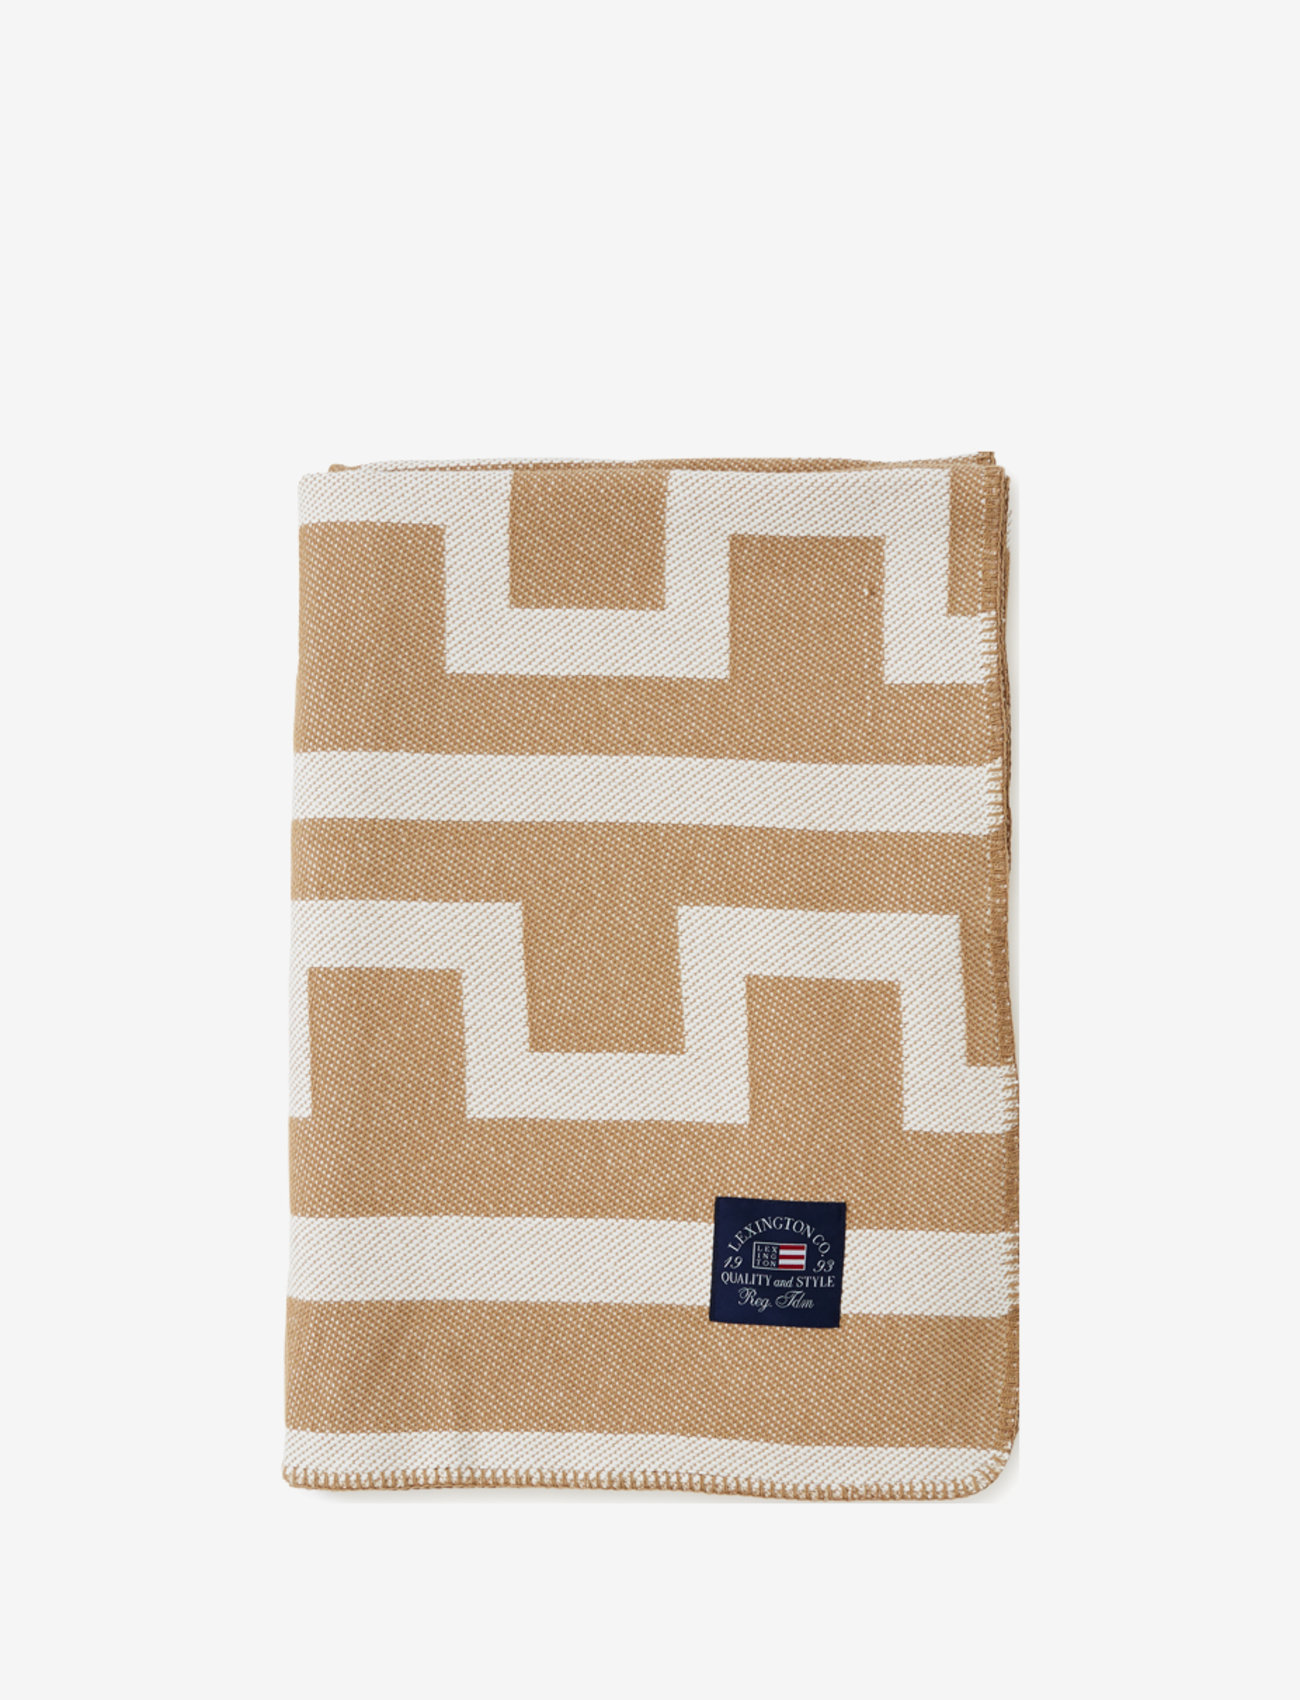 Lexington Home - Graphic Recycled Cotton Blanket - plaids - off white/beige - 0